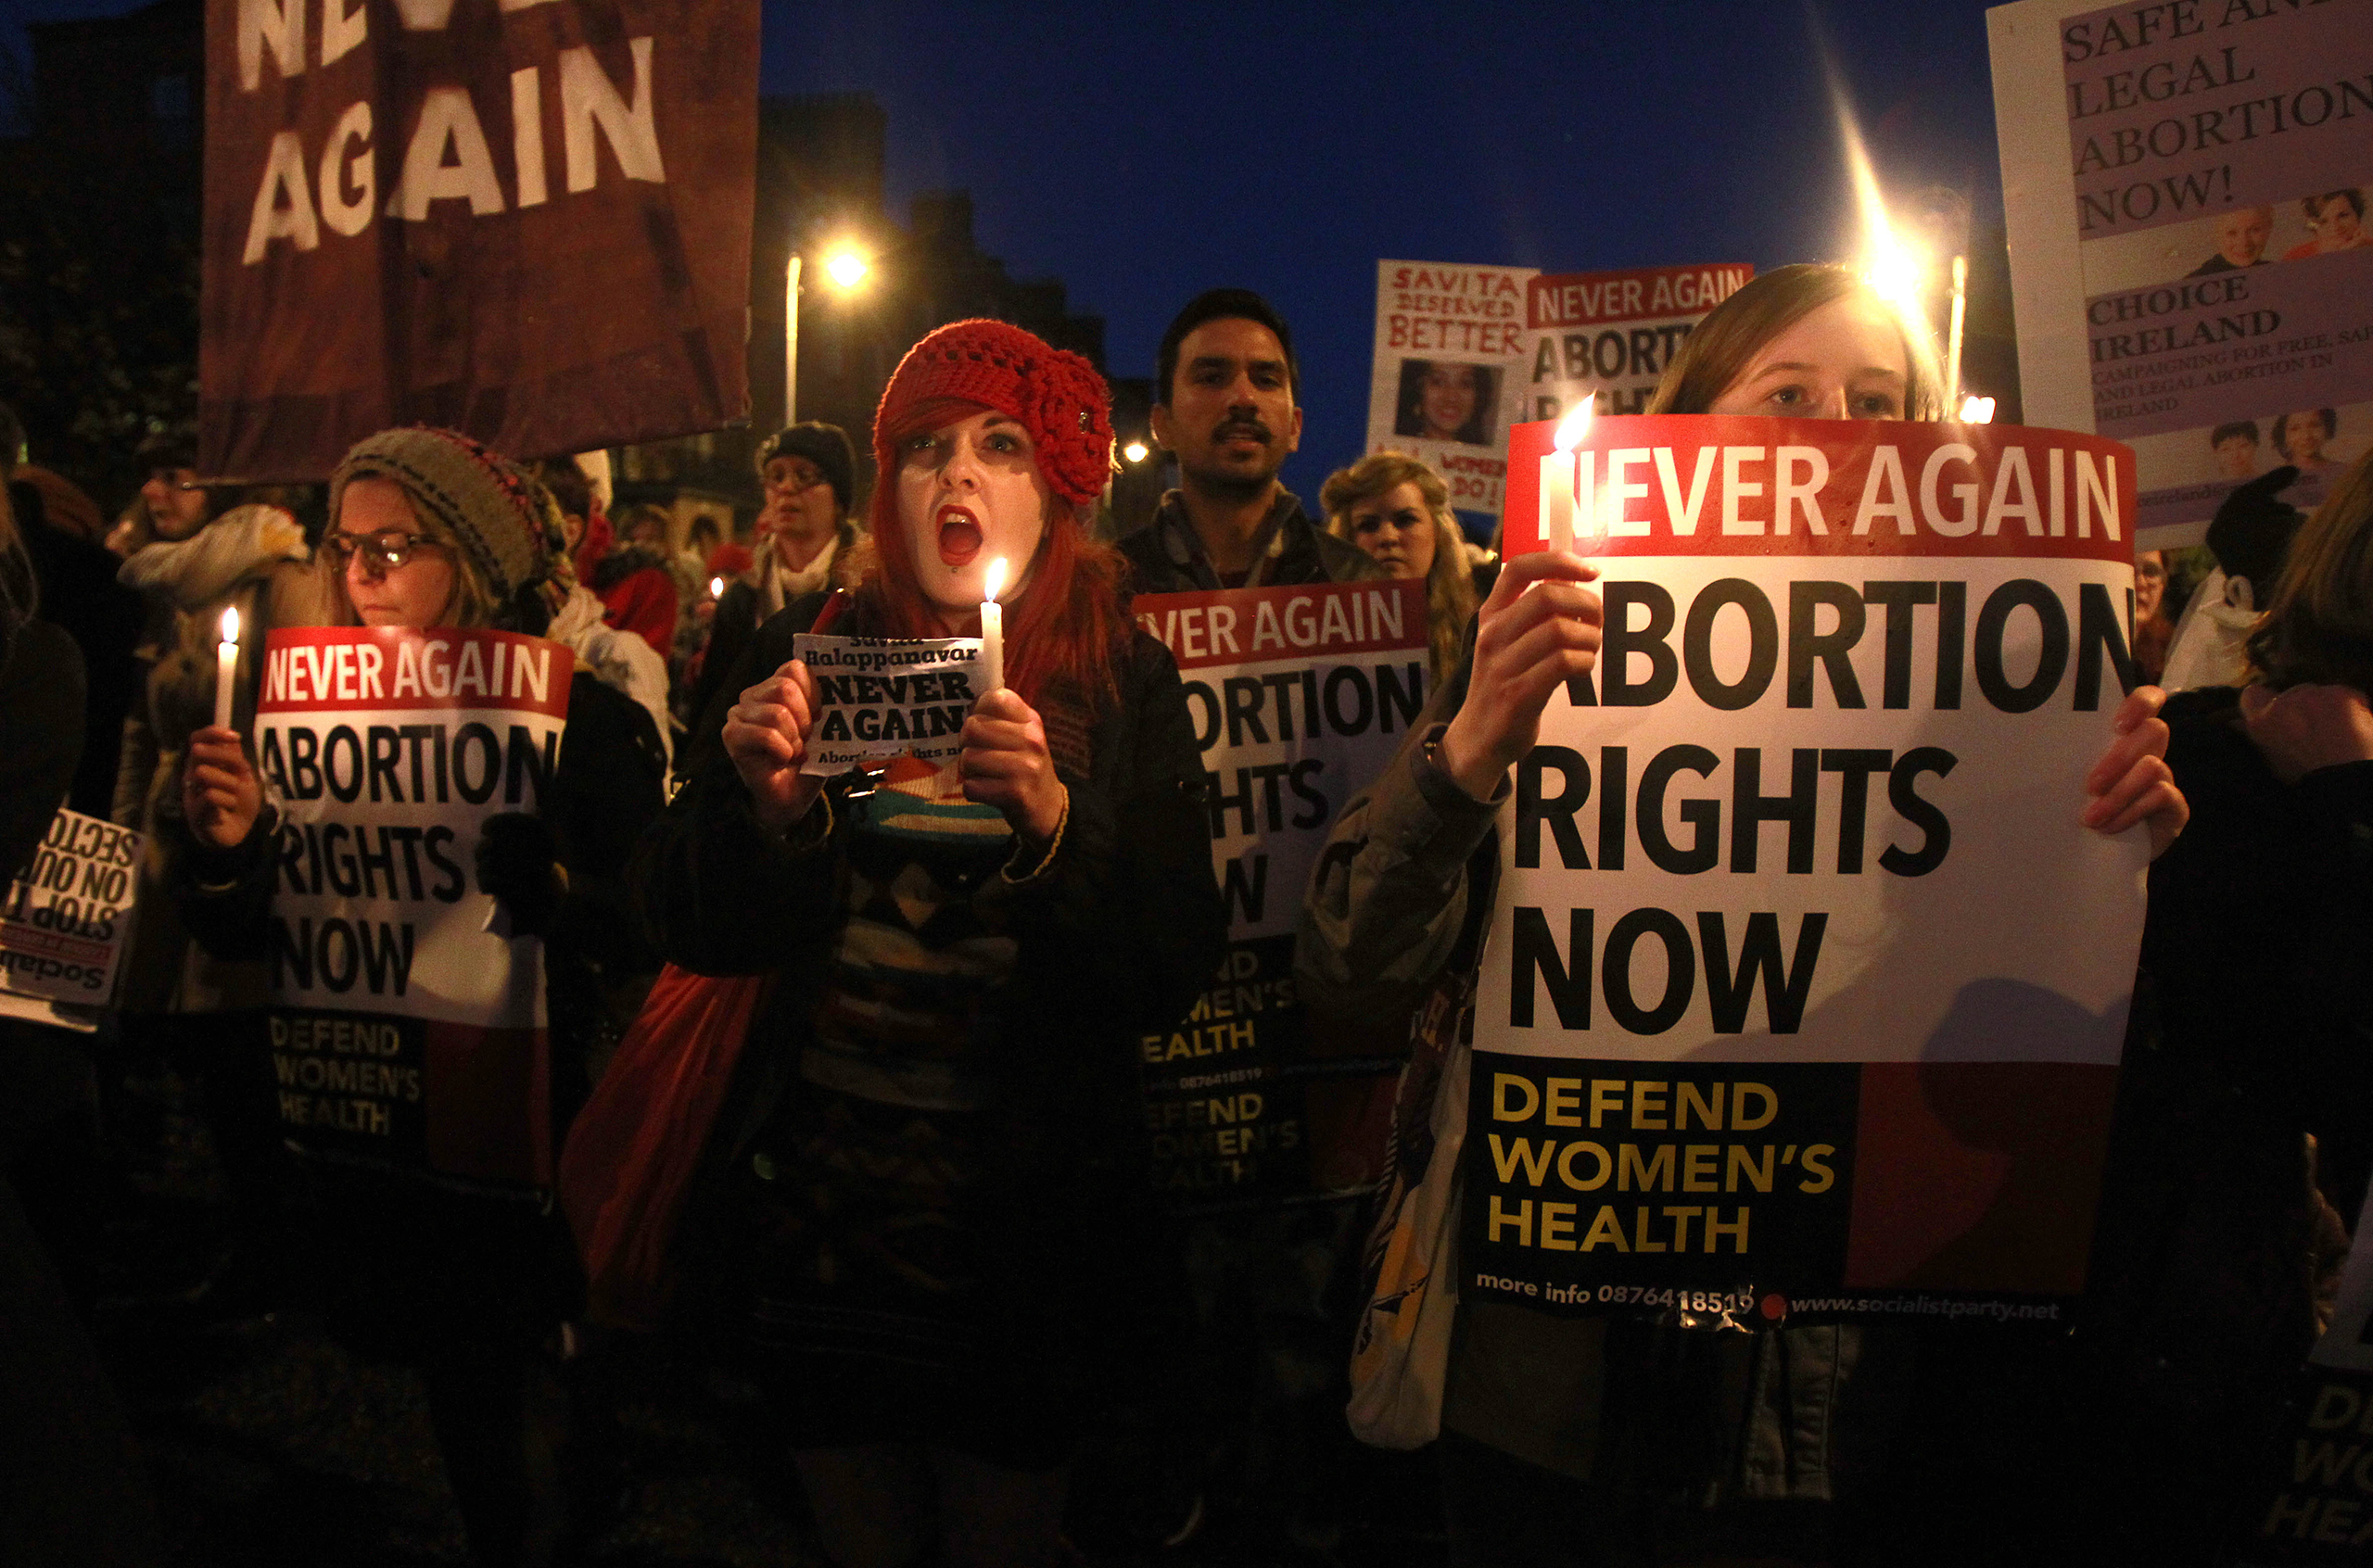 Demonstrators hold placards and candles in memory of Savita Halappanavar, whose doctors allegedly refused to perform an abortion because it was against the laws of the Catholic country, in Dublin on Nov. 17, 2012. The Indian woman, who was 17 weeks pregnant, repeatedly asked the hospital to terminate her pregnancy because she had severe back pain and was miscarrying, her family said.